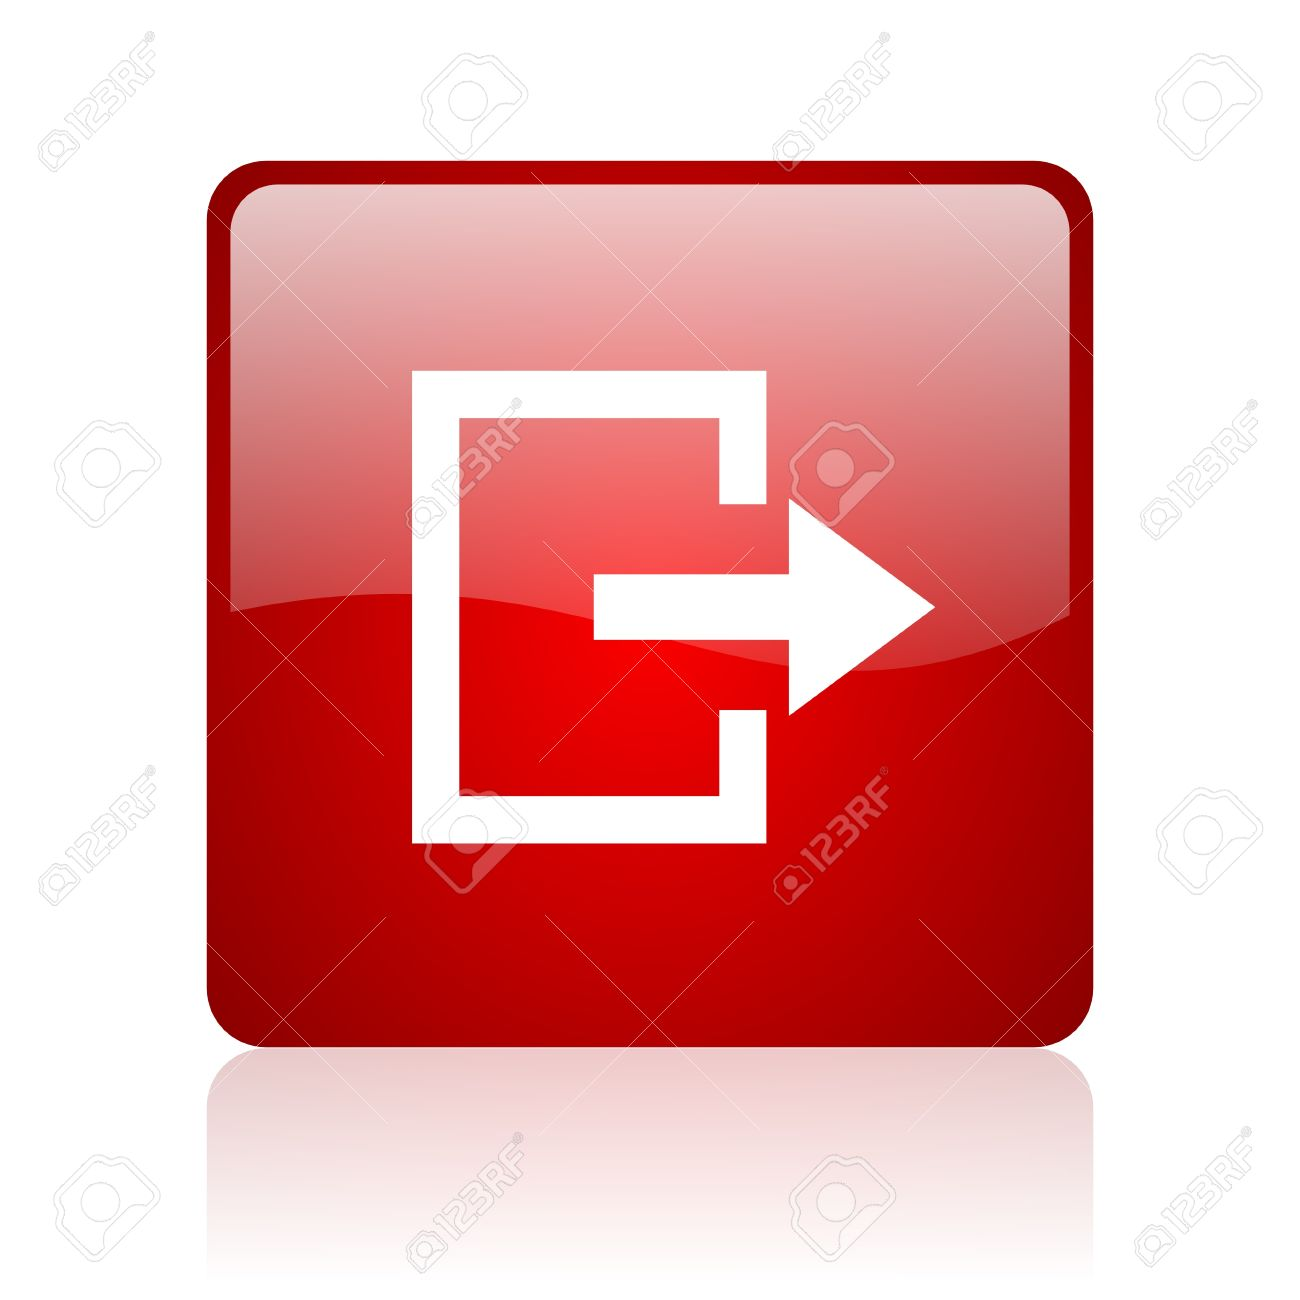 Exit Red Square Glossy Web Icon On White Background Stock Photo 1300x1300